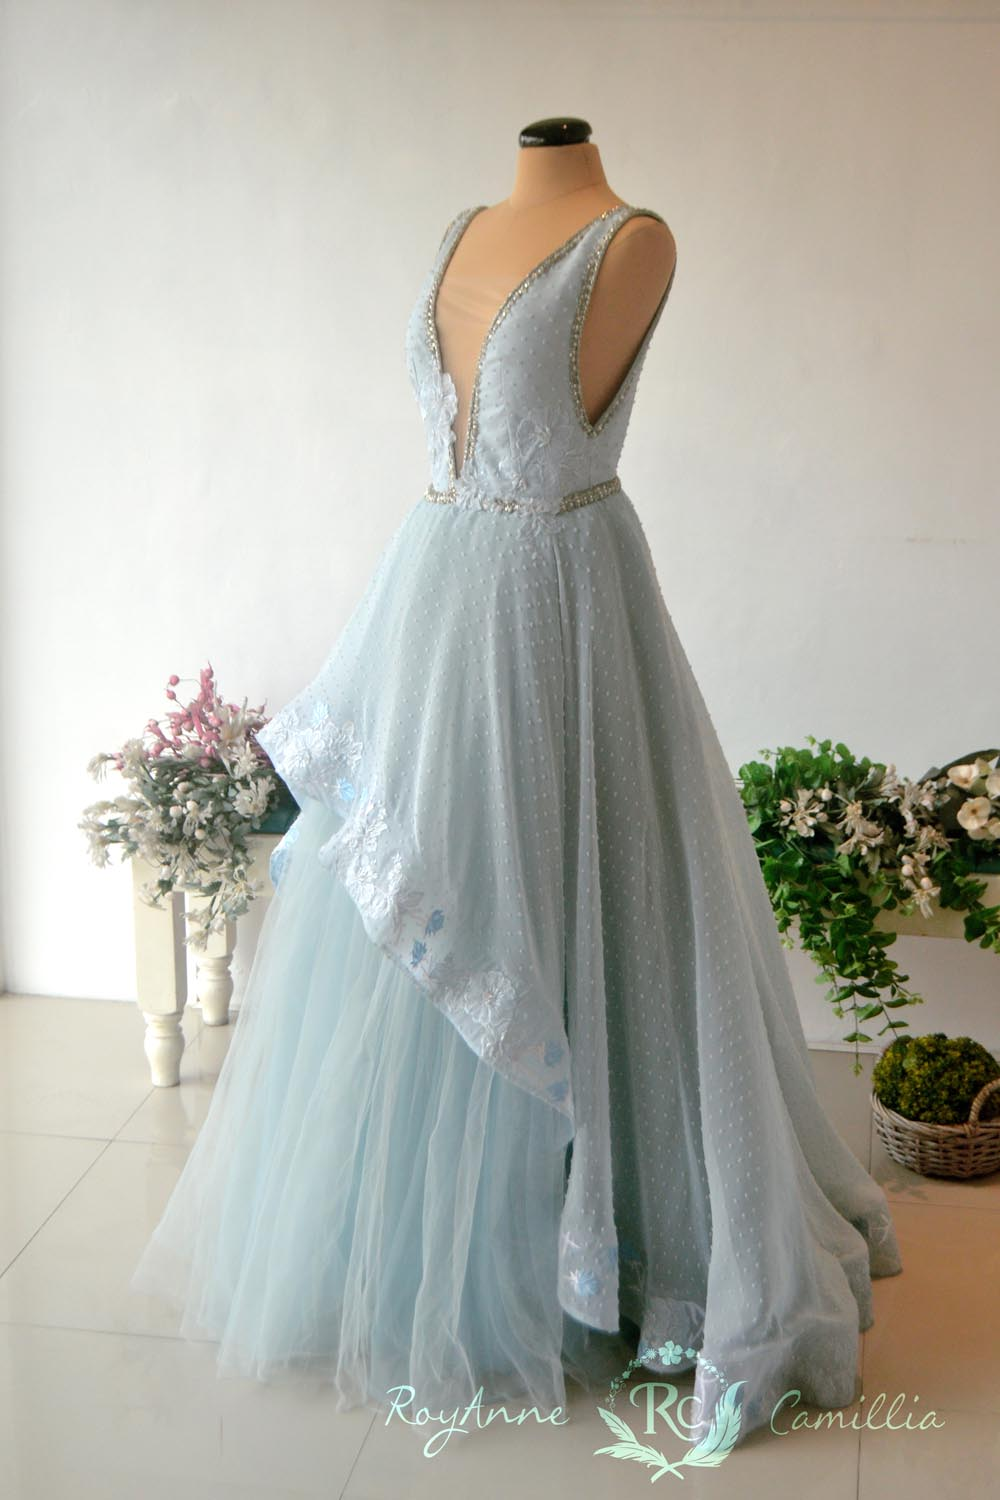 Alexine royanne camillia couture bridal gowns and gown for Rent for wedding dress